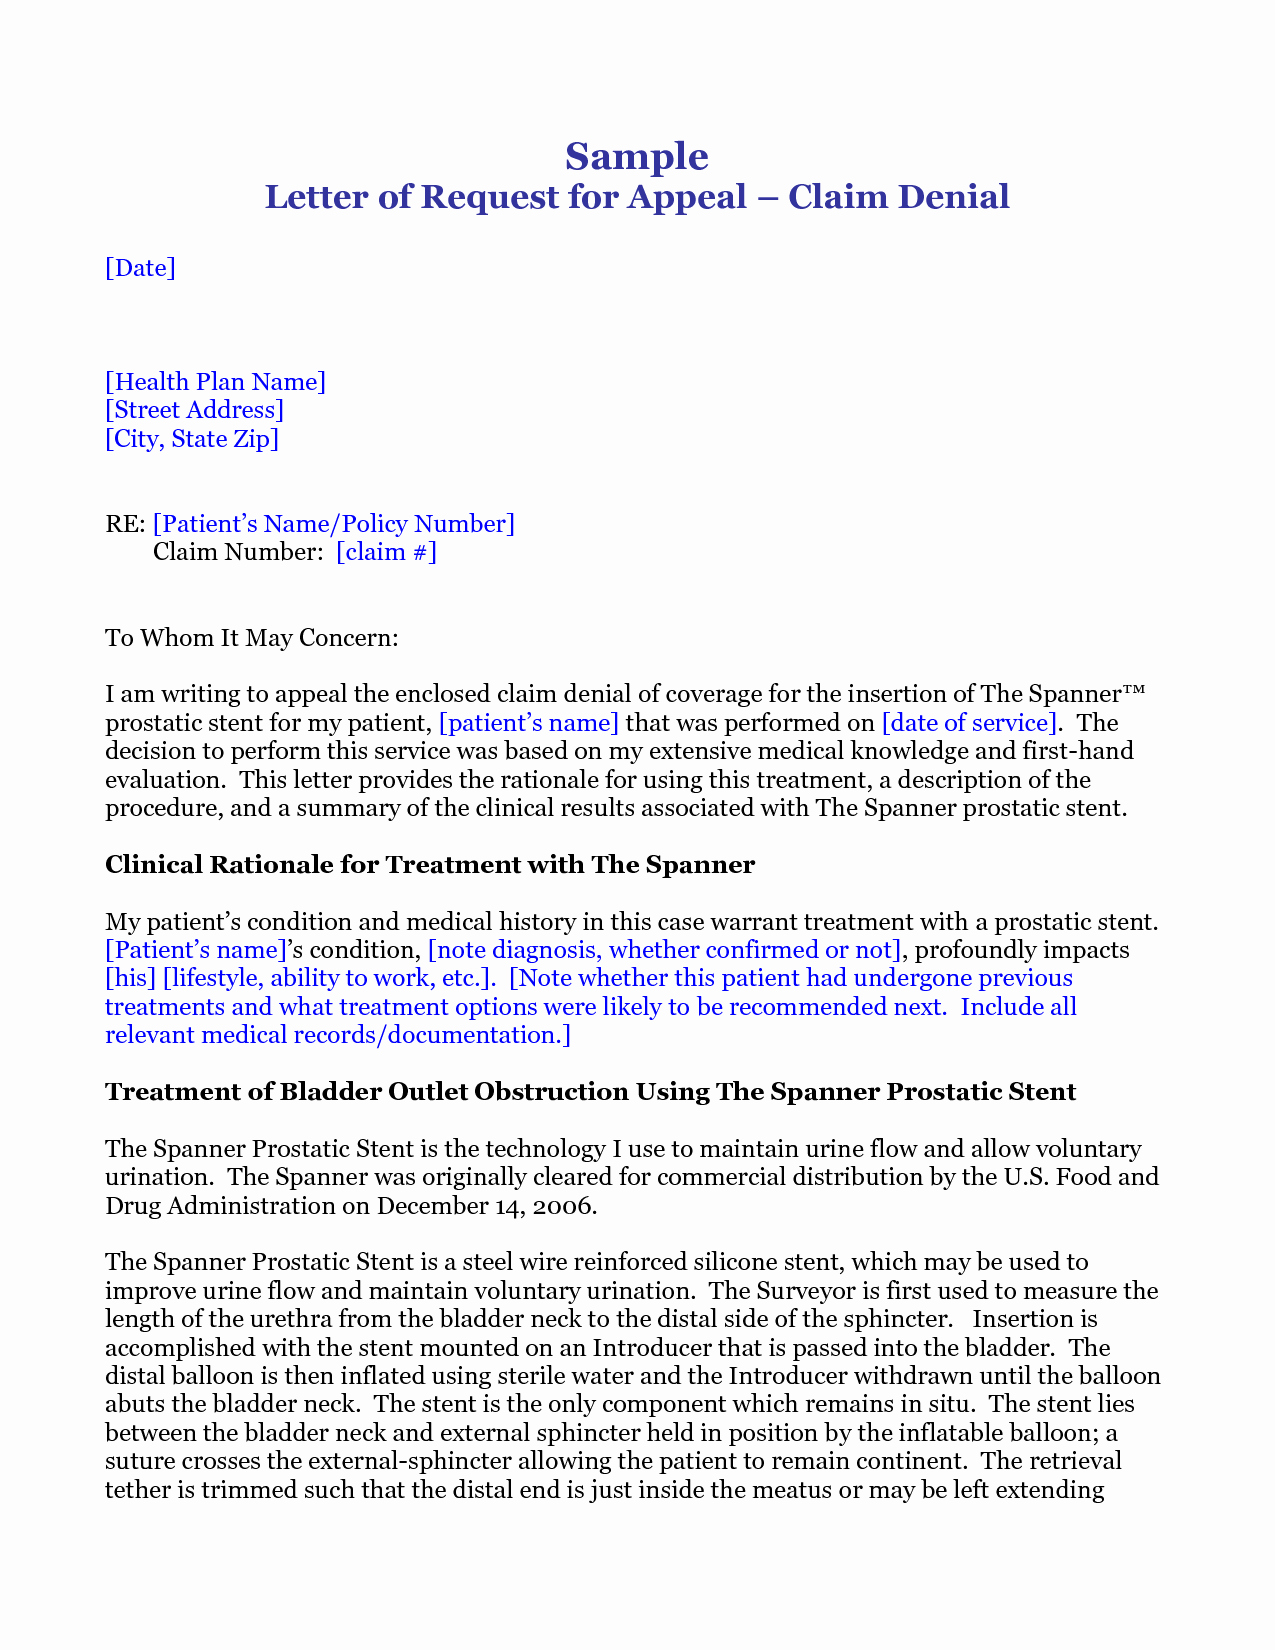 post professional medical appeal letters